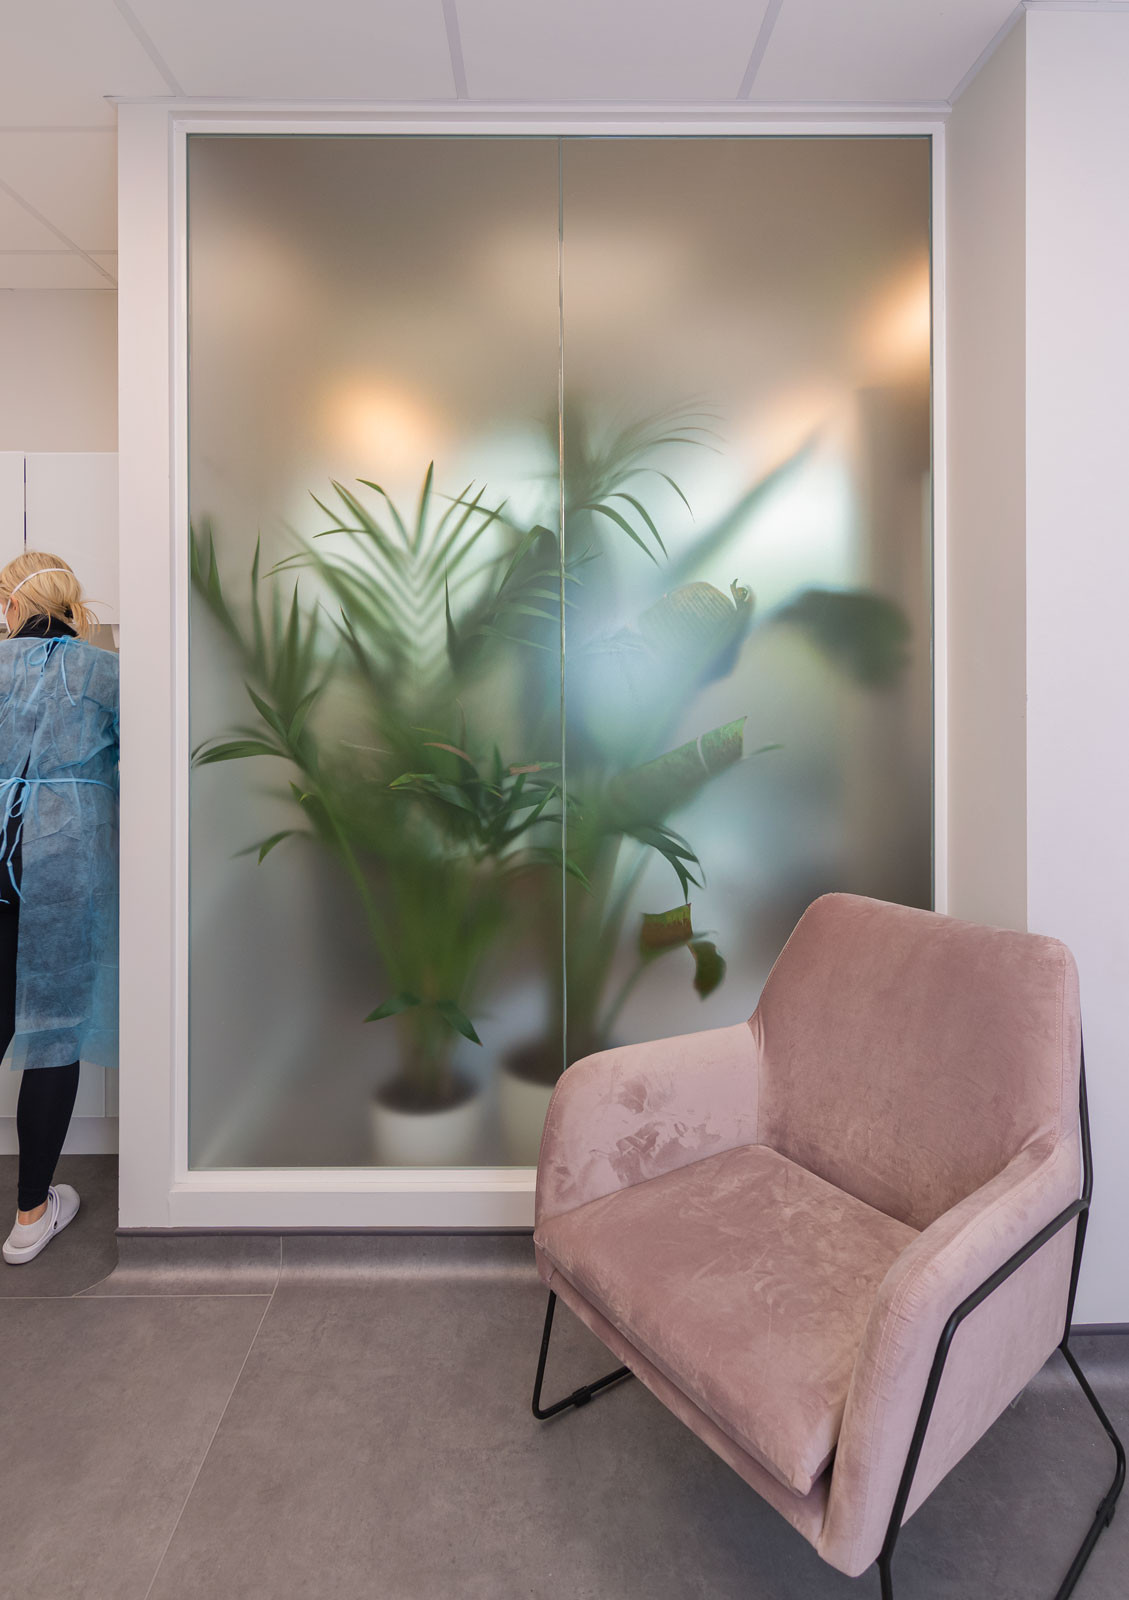 Incorporating biophilic elements in clinical space design through frosted window effect and light shadows of plants